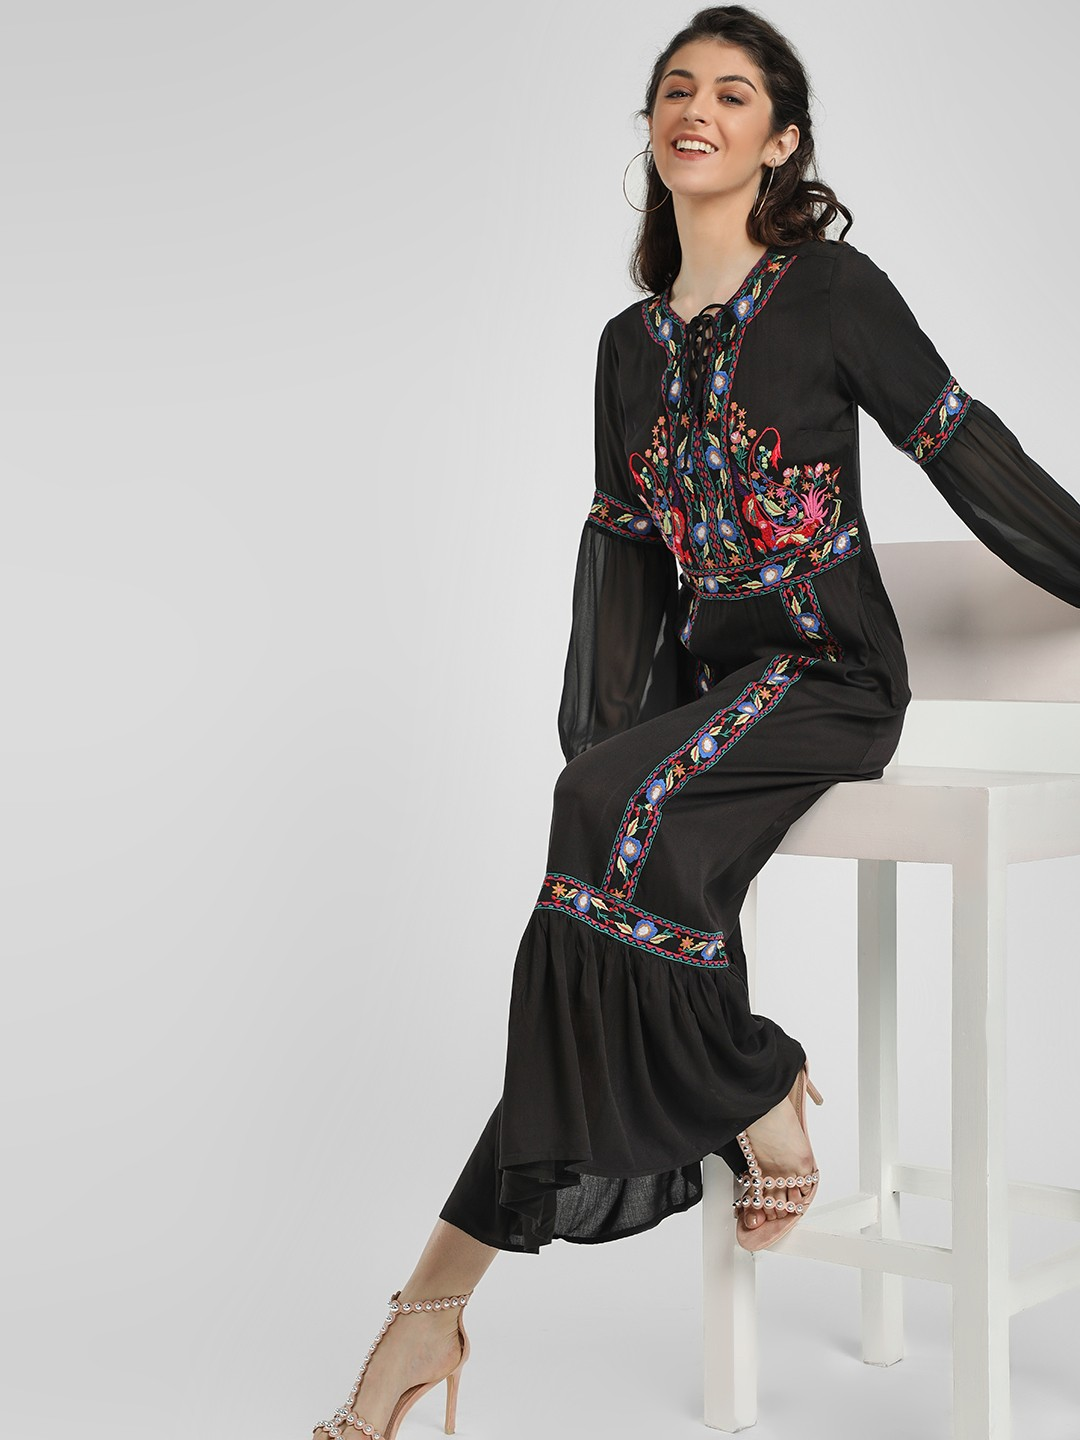 Kisscoast Black Floral Embroidered Maxi Dress 1